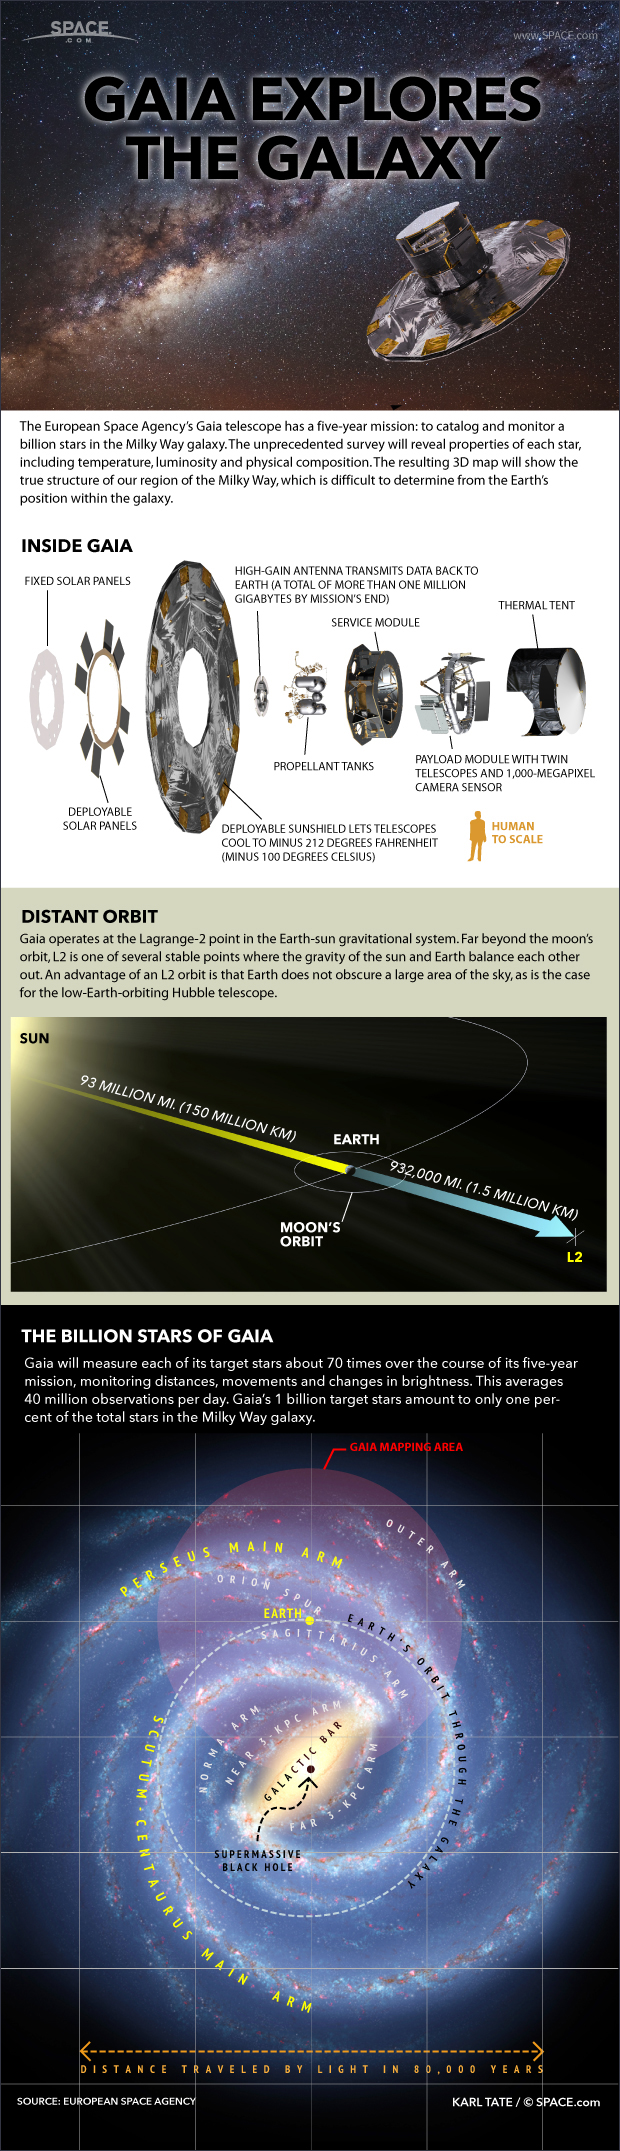 Infographic: How the Gaia space telescope maps the Milky Way galaxy in 3D